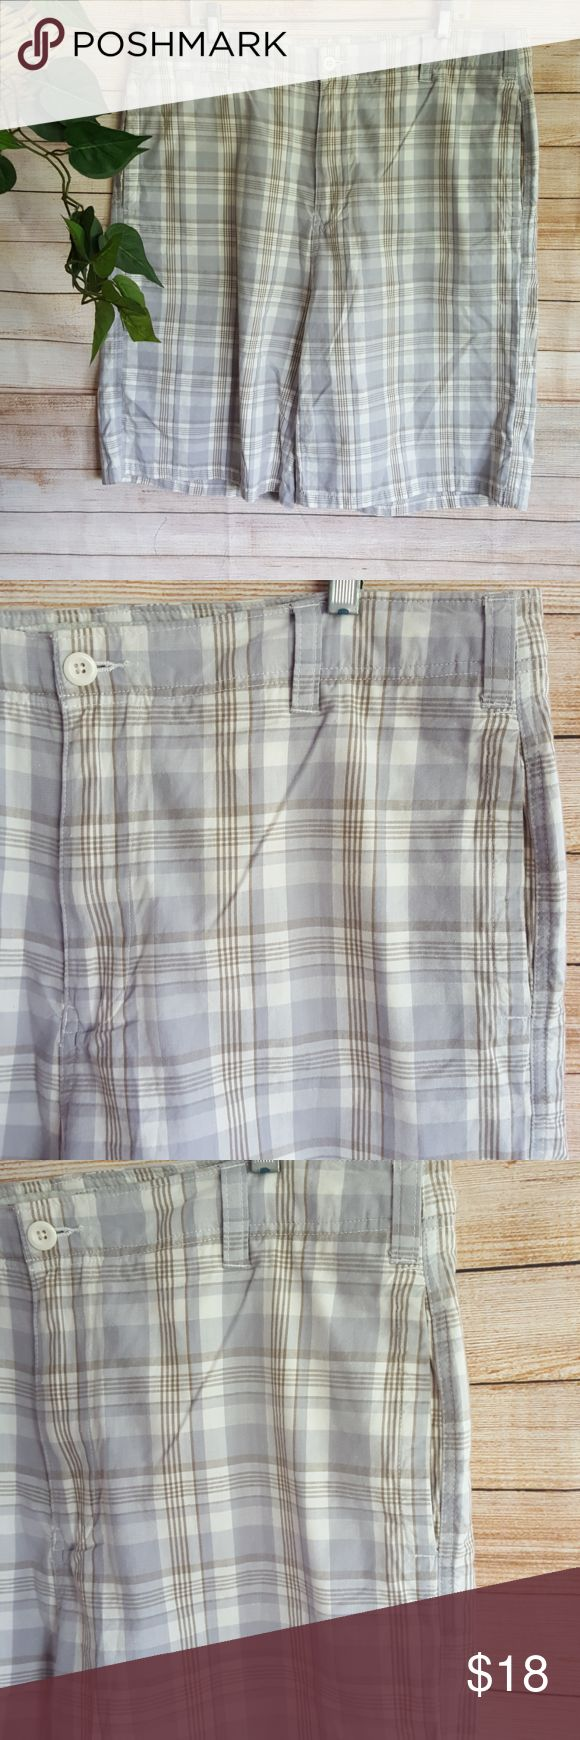 Fission Mens Plaid Casual Shorts Bermuda Golf 38 Fission men's plaid Bermuda shorts.  Walking shorts. Casual shorts.  100% cotton.  Size 38 waist.  Waist 20 in. Inseam 11 inches. Rise 14.5 in.  Gently used condition with no flaws. Please see photos for details. Fission Shorts